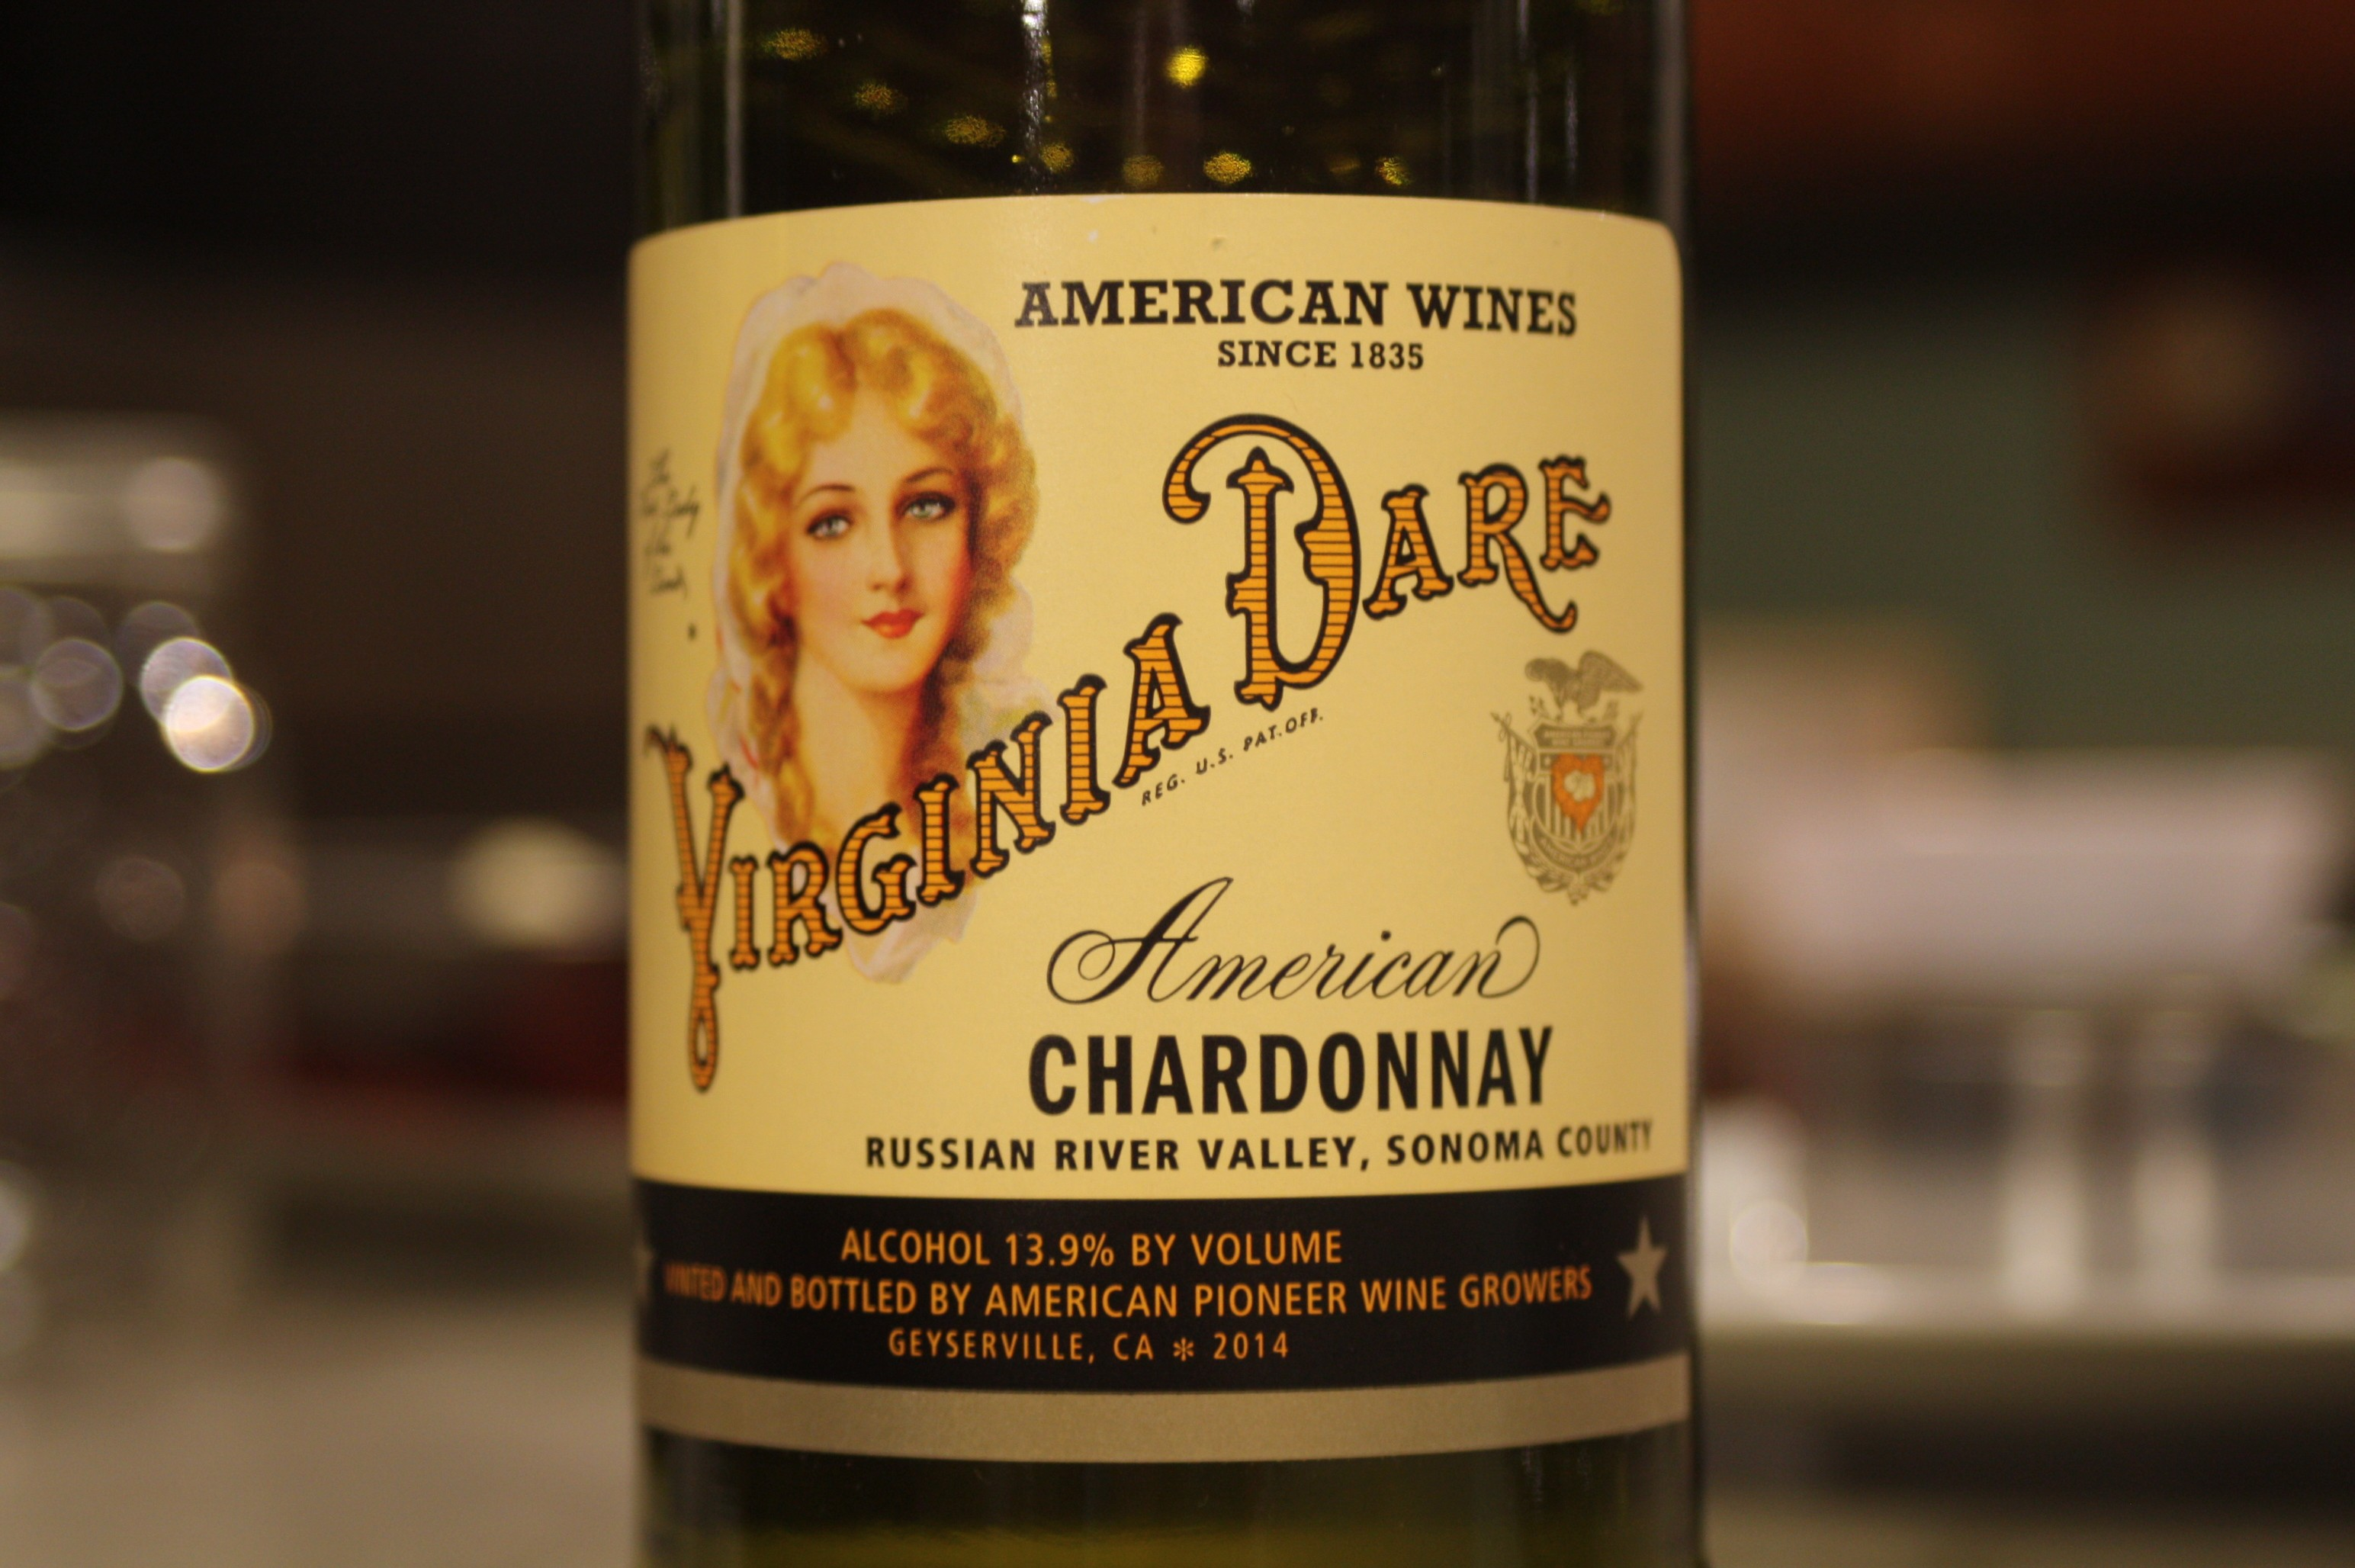 Virginia Dare Russian River Valley Chardonnay 2014